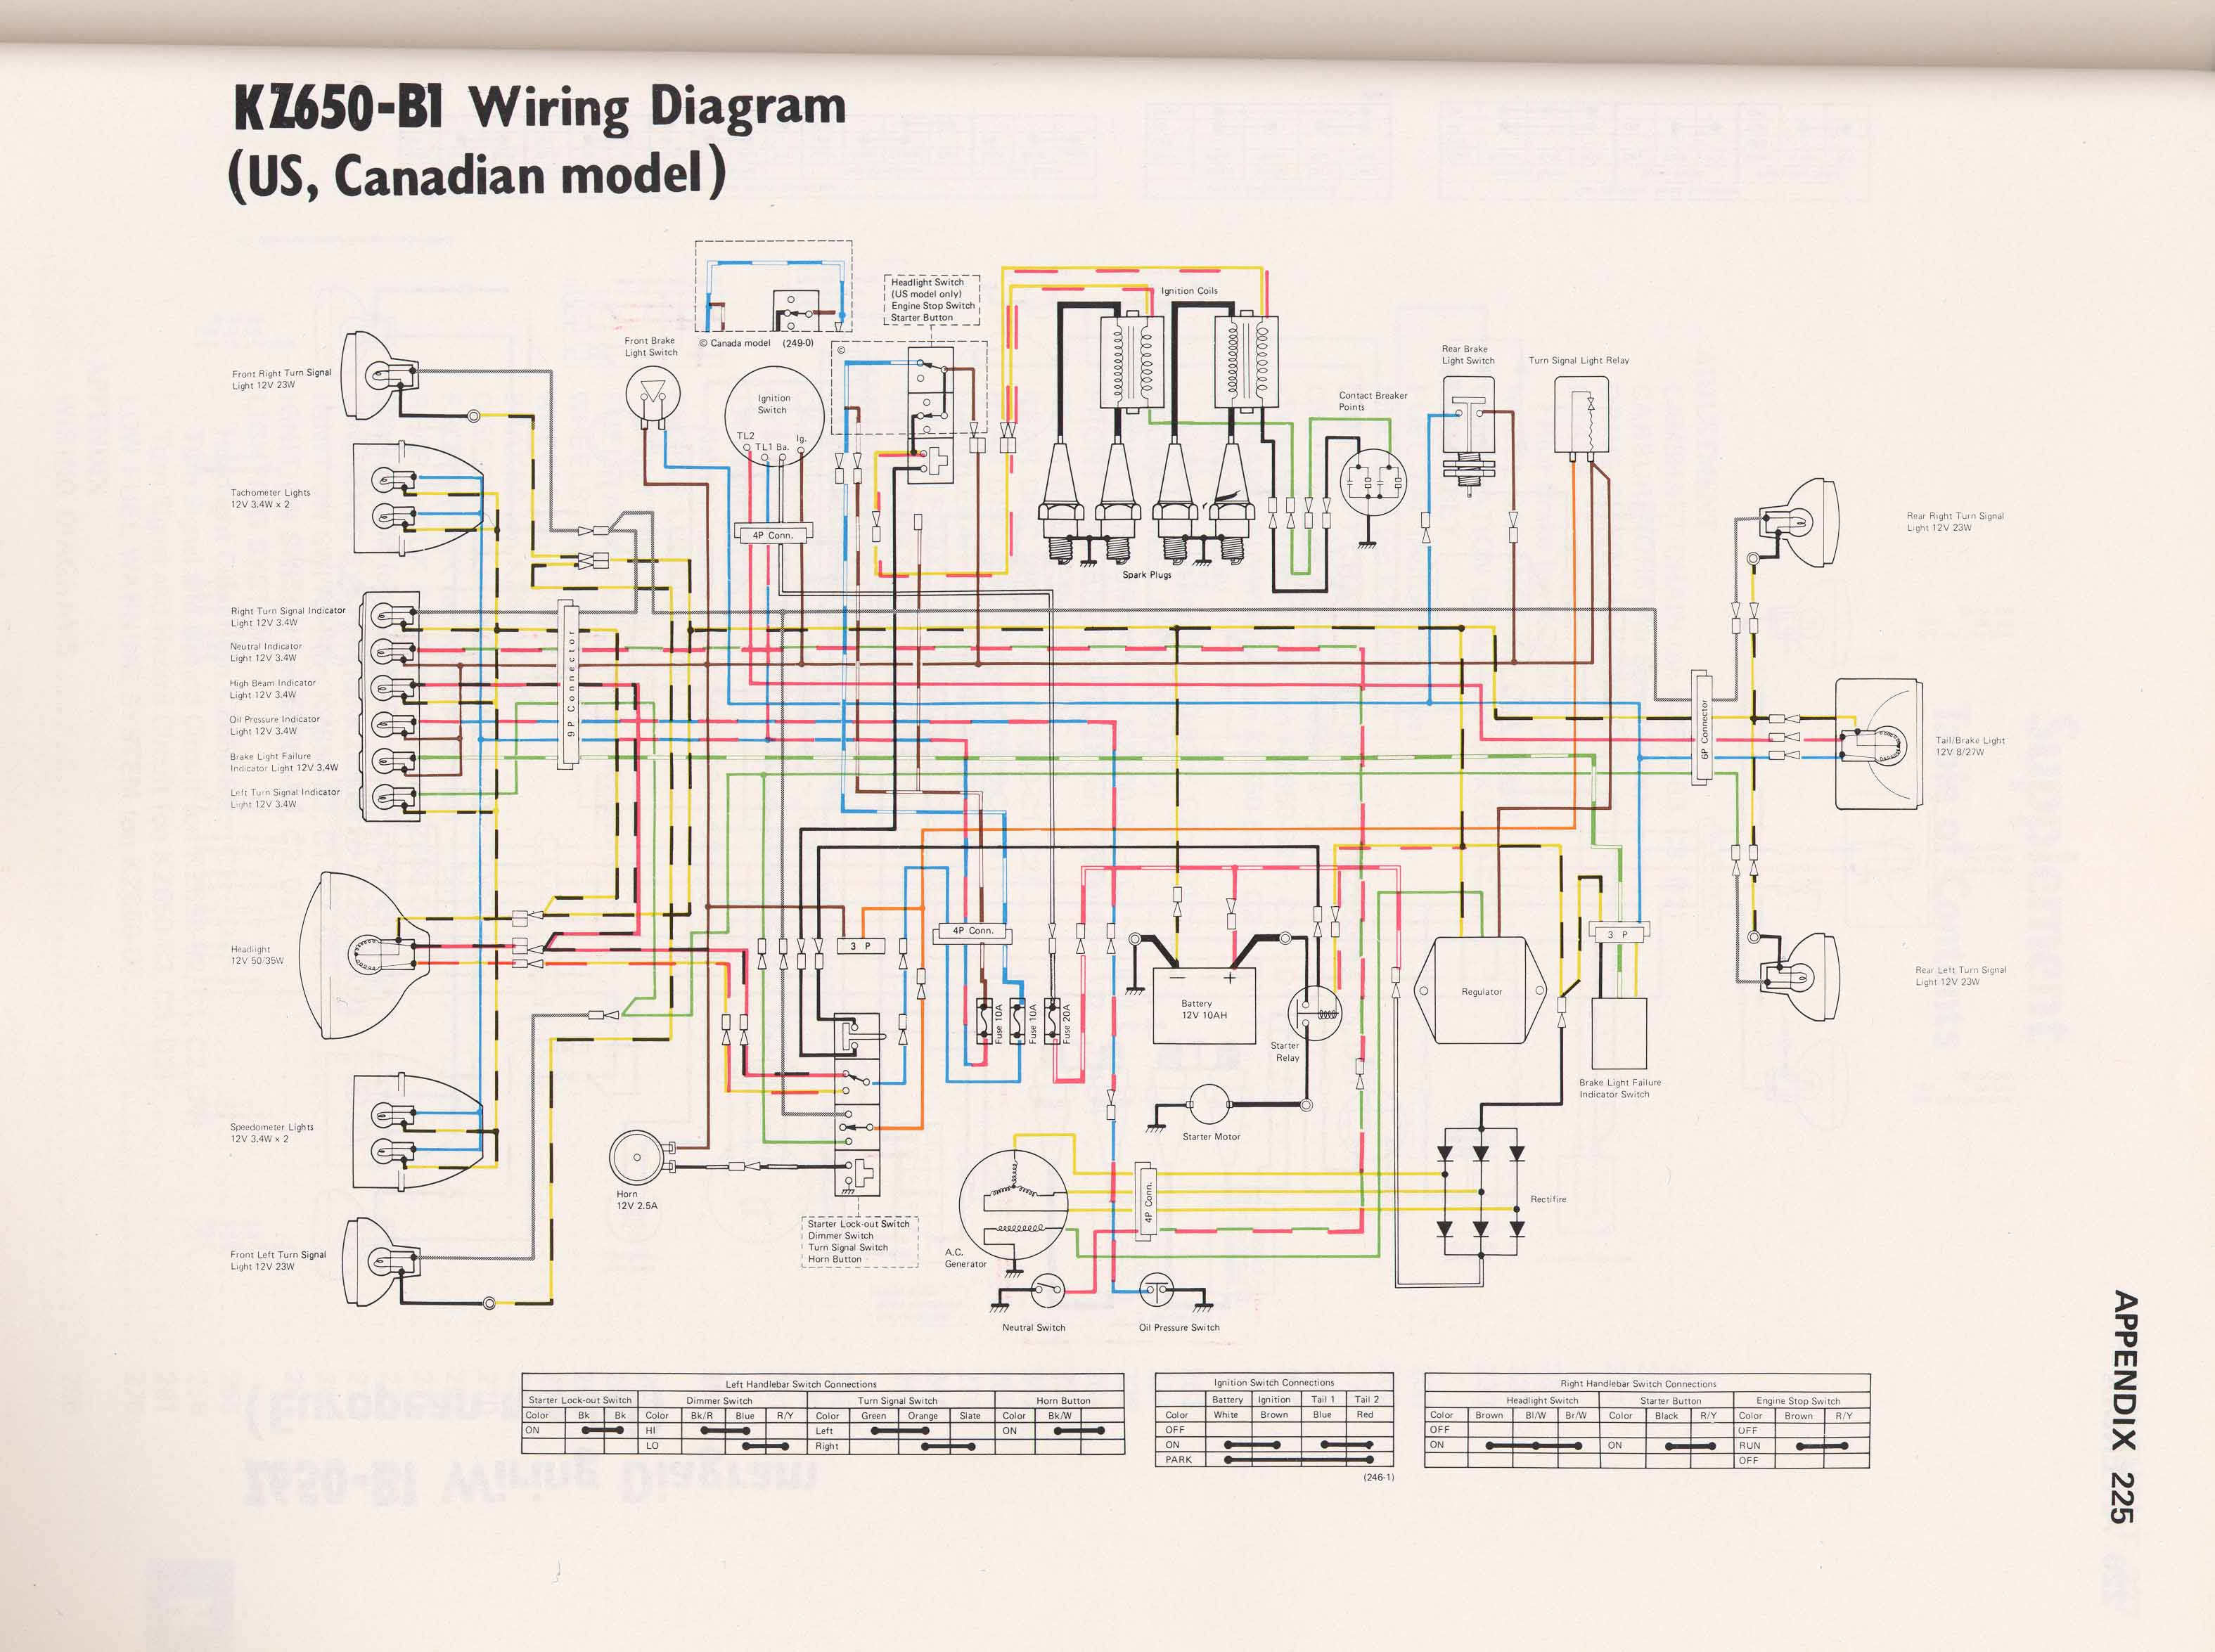 KZ650 B1 kz650 info wiring diagrams 2006 2007 2008 ninja 650r wiring diagram at readyjetset.co